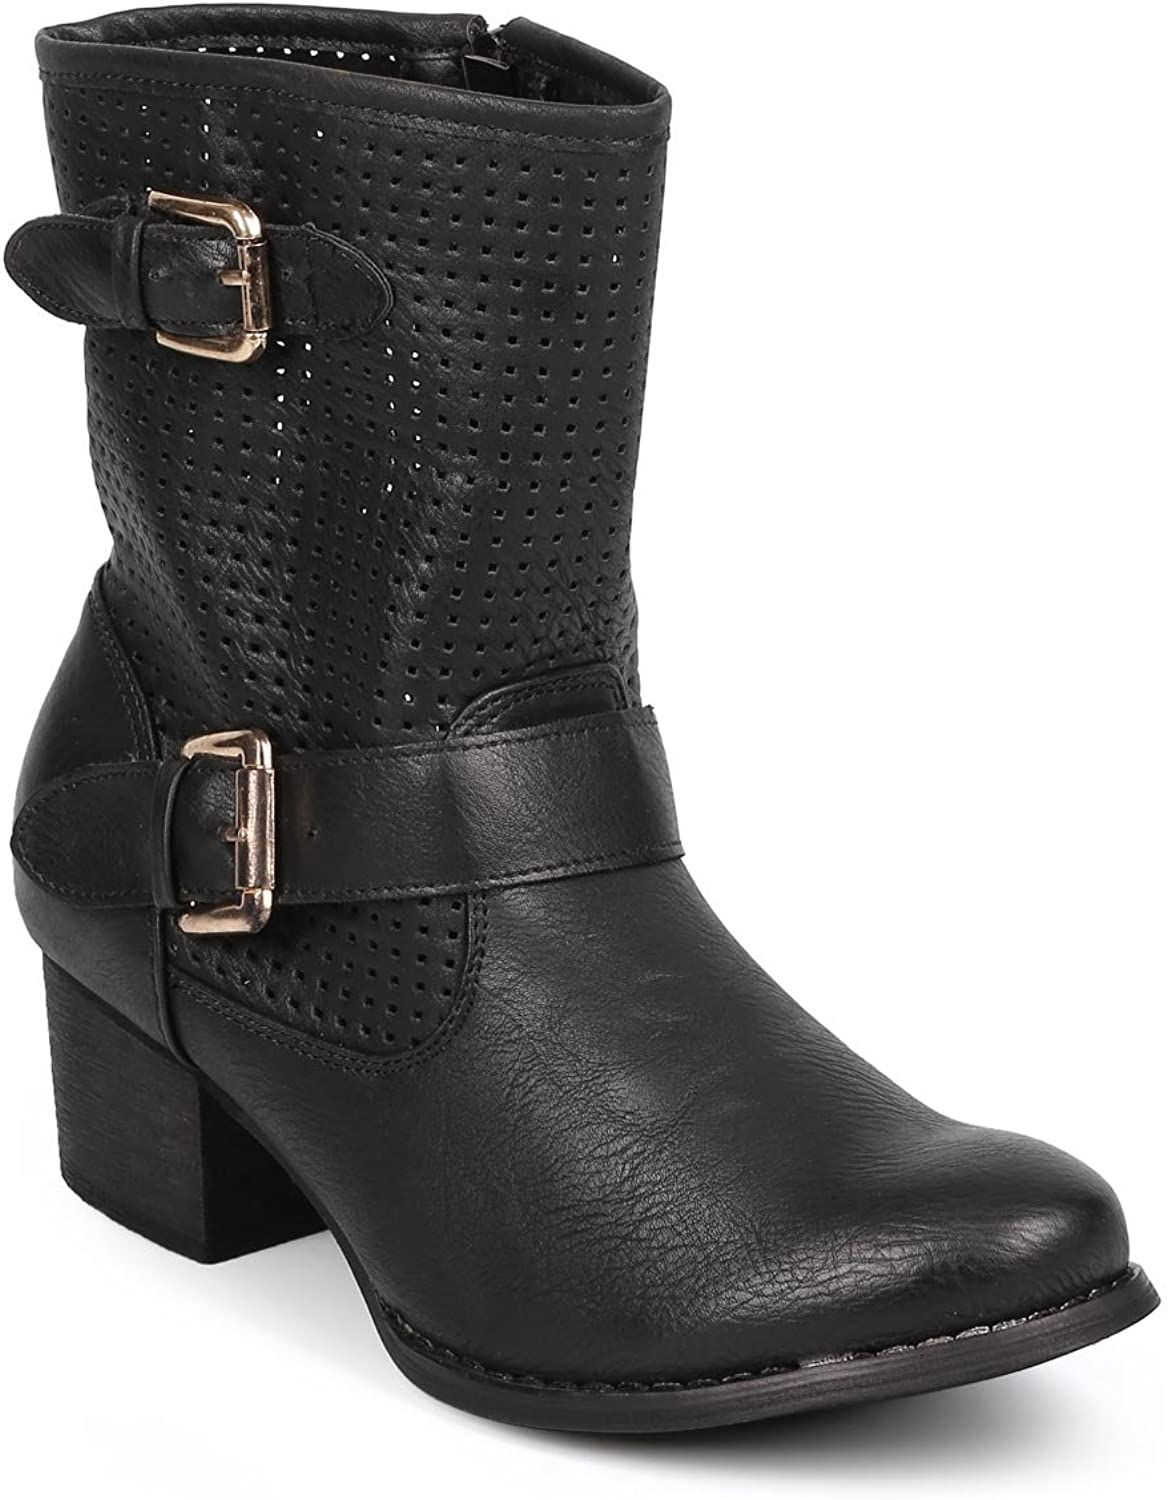 Liliana Women Leatherette Perforated Round Toe Buckle Strap Riding Boot DB59 - Black